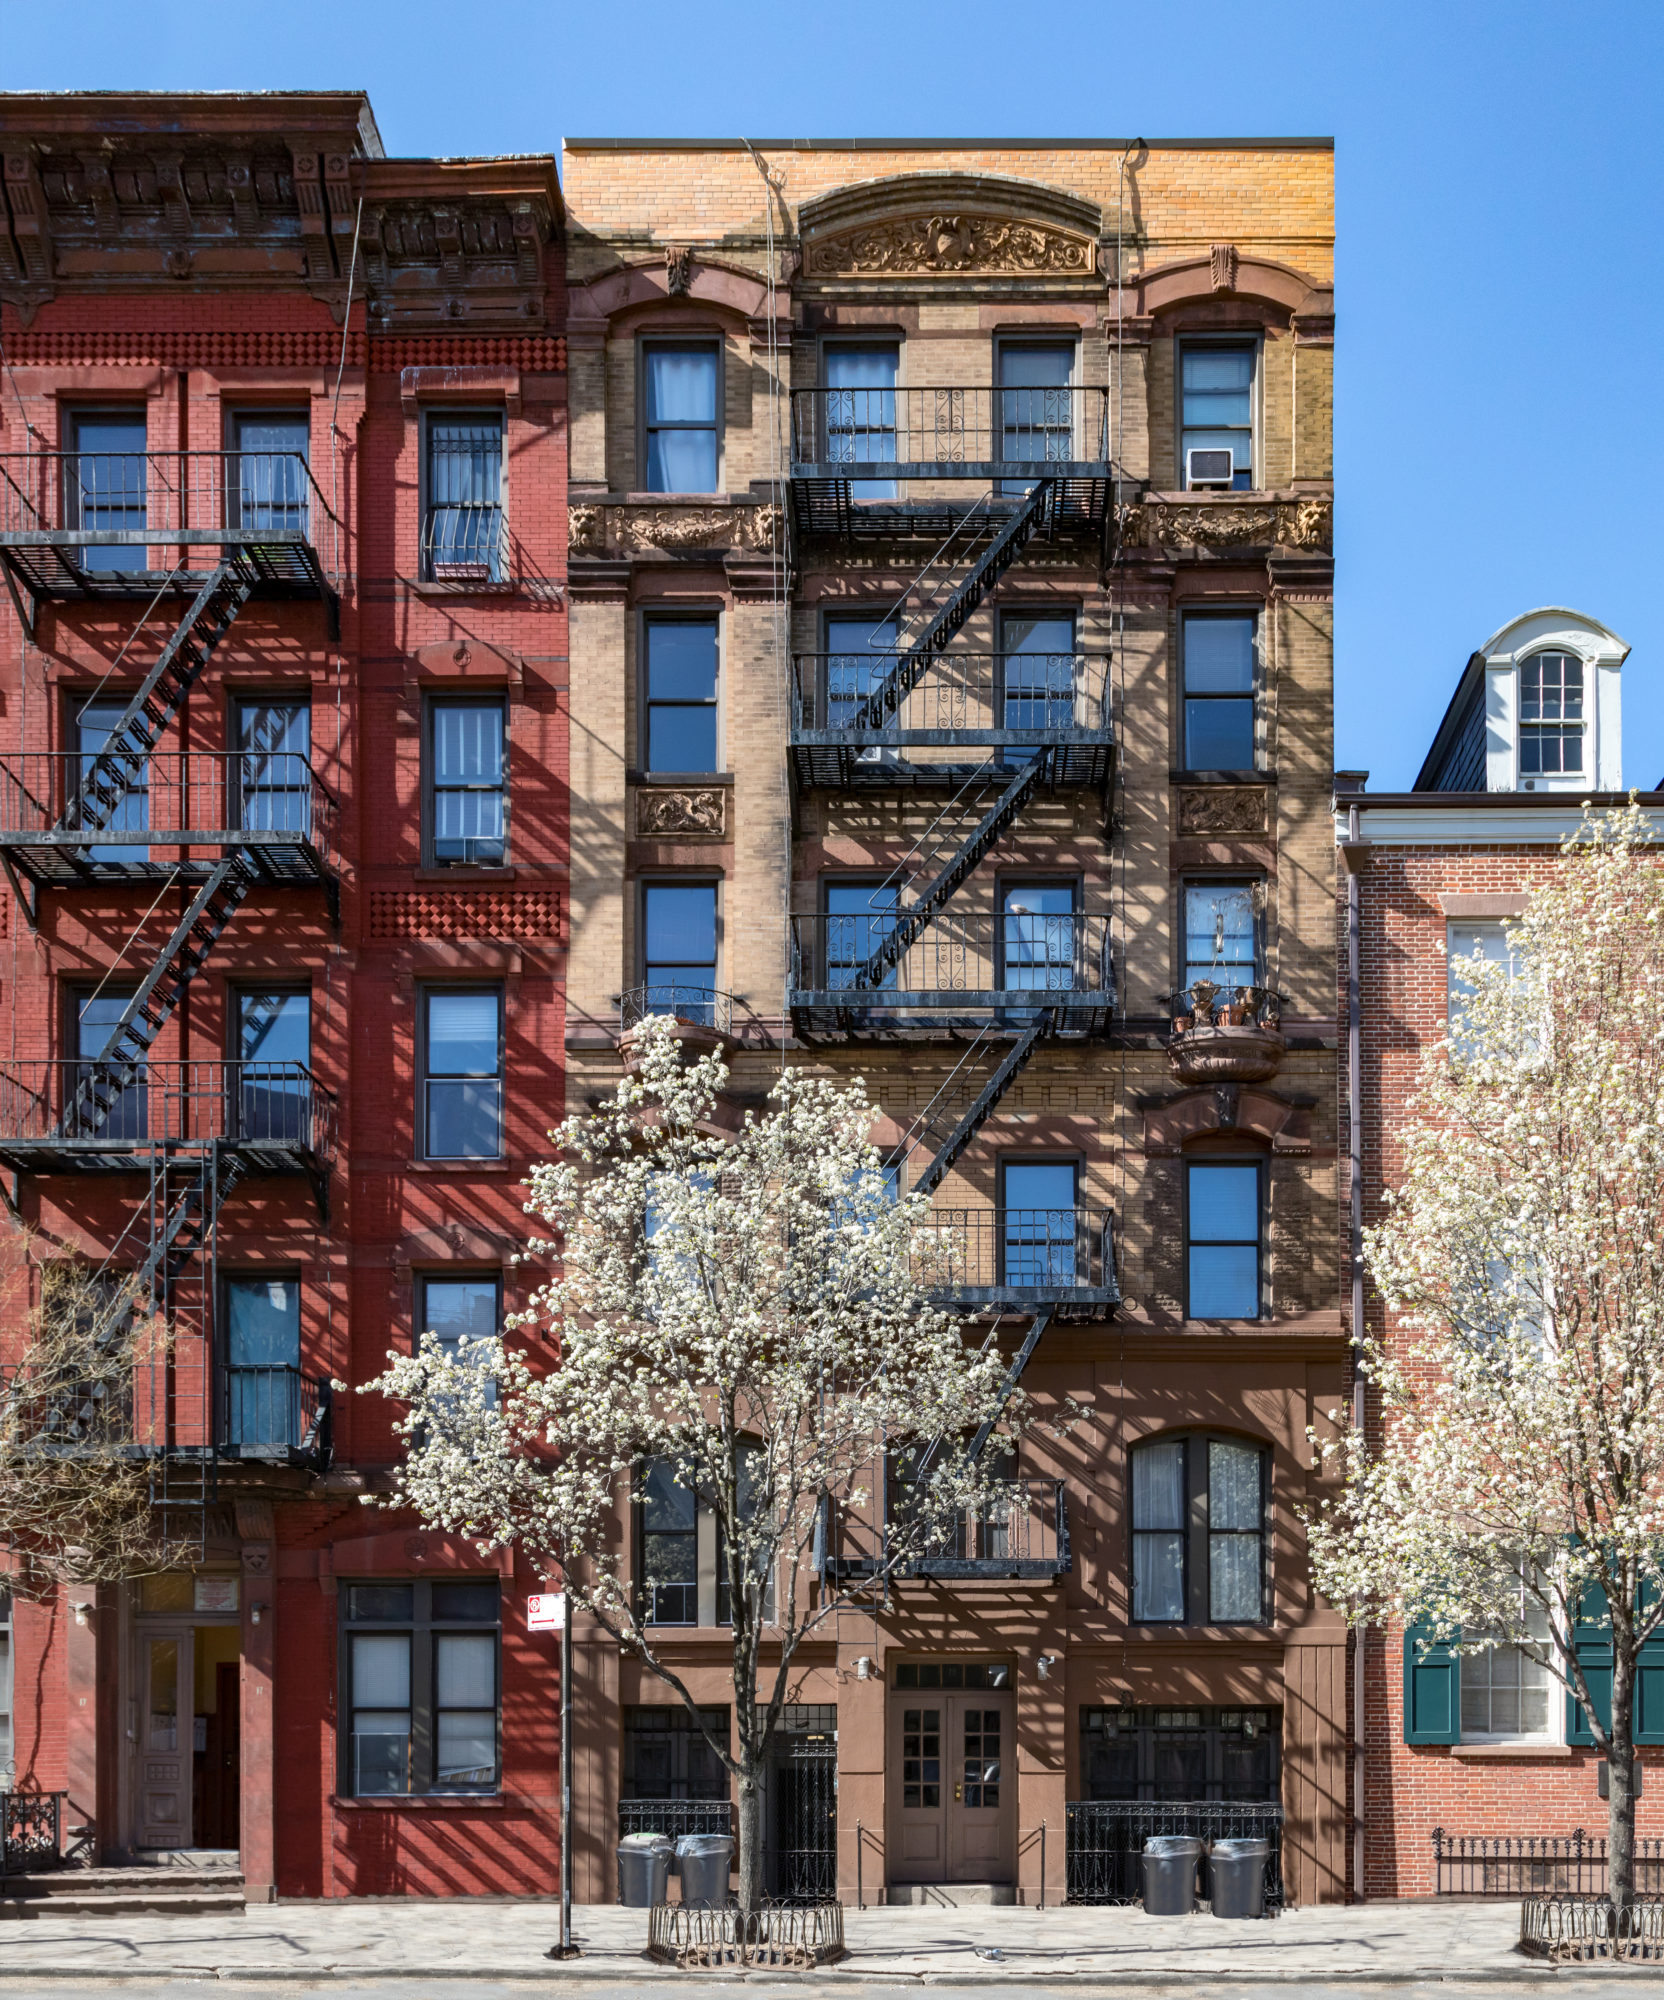 The coronavirus has changed what we want in a home. Here's how real estate developers are catering to that.